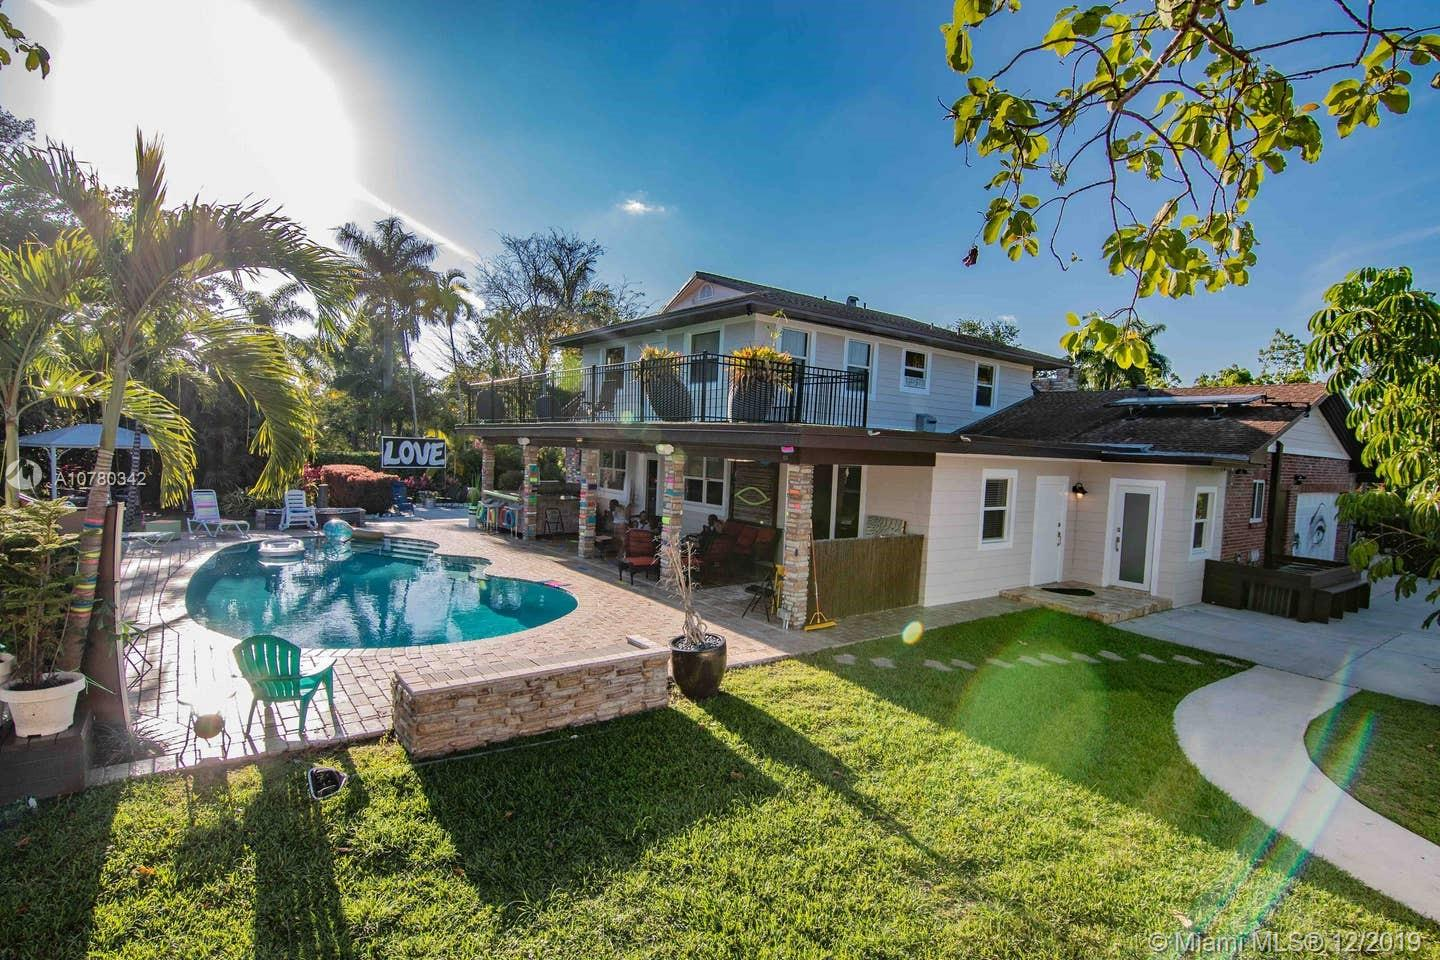 250 NE 158th St, Miami Shores, Florida